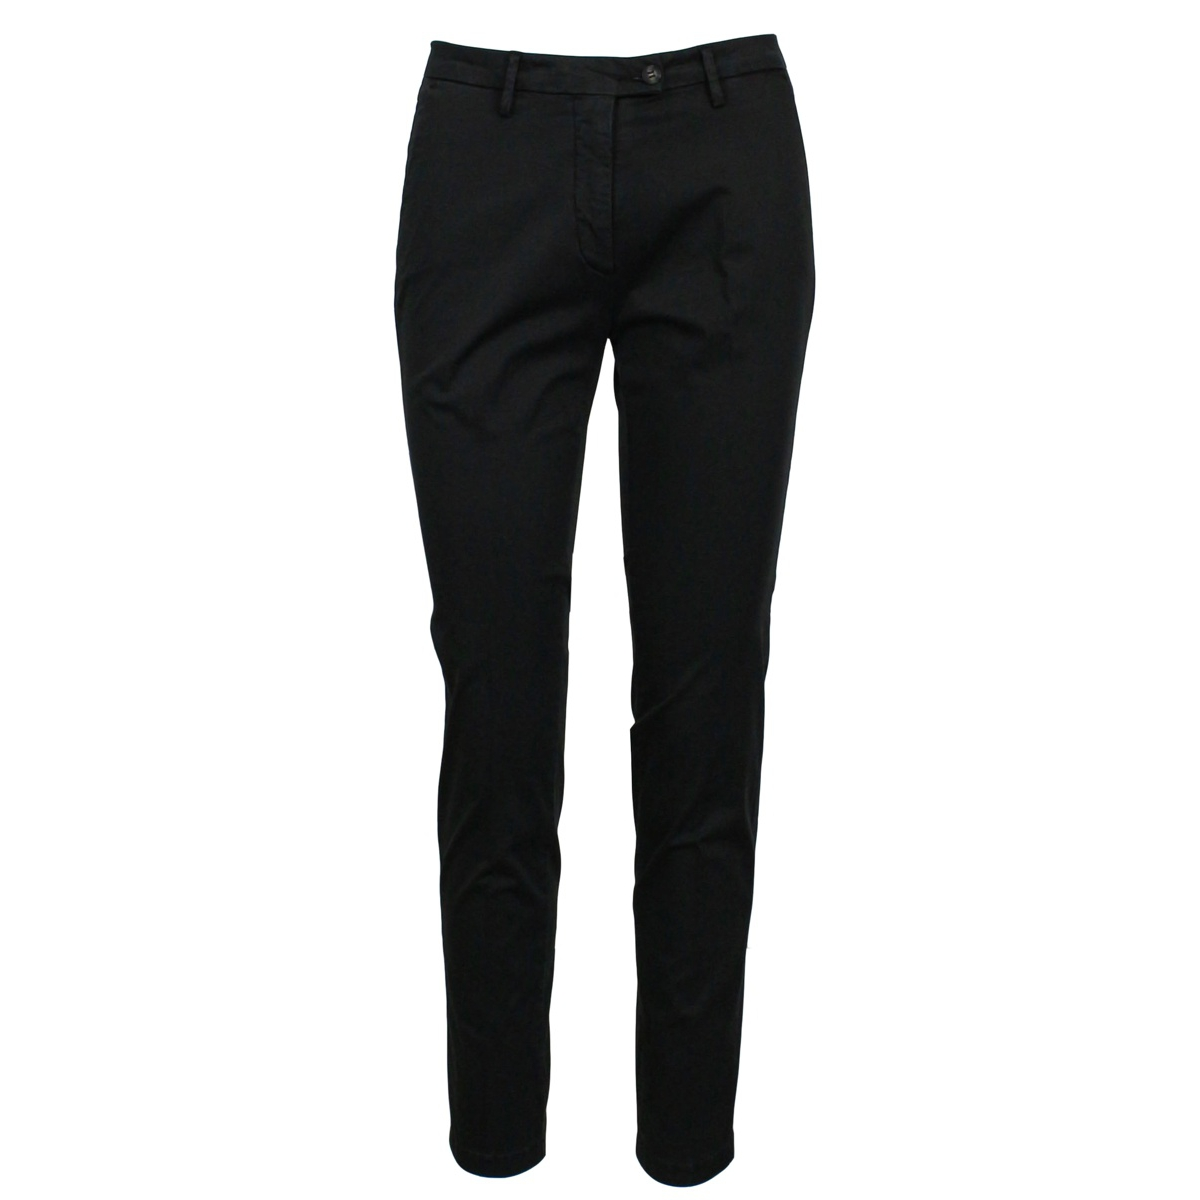 Cotton trousers with america pockets Black MICHAEL COAL